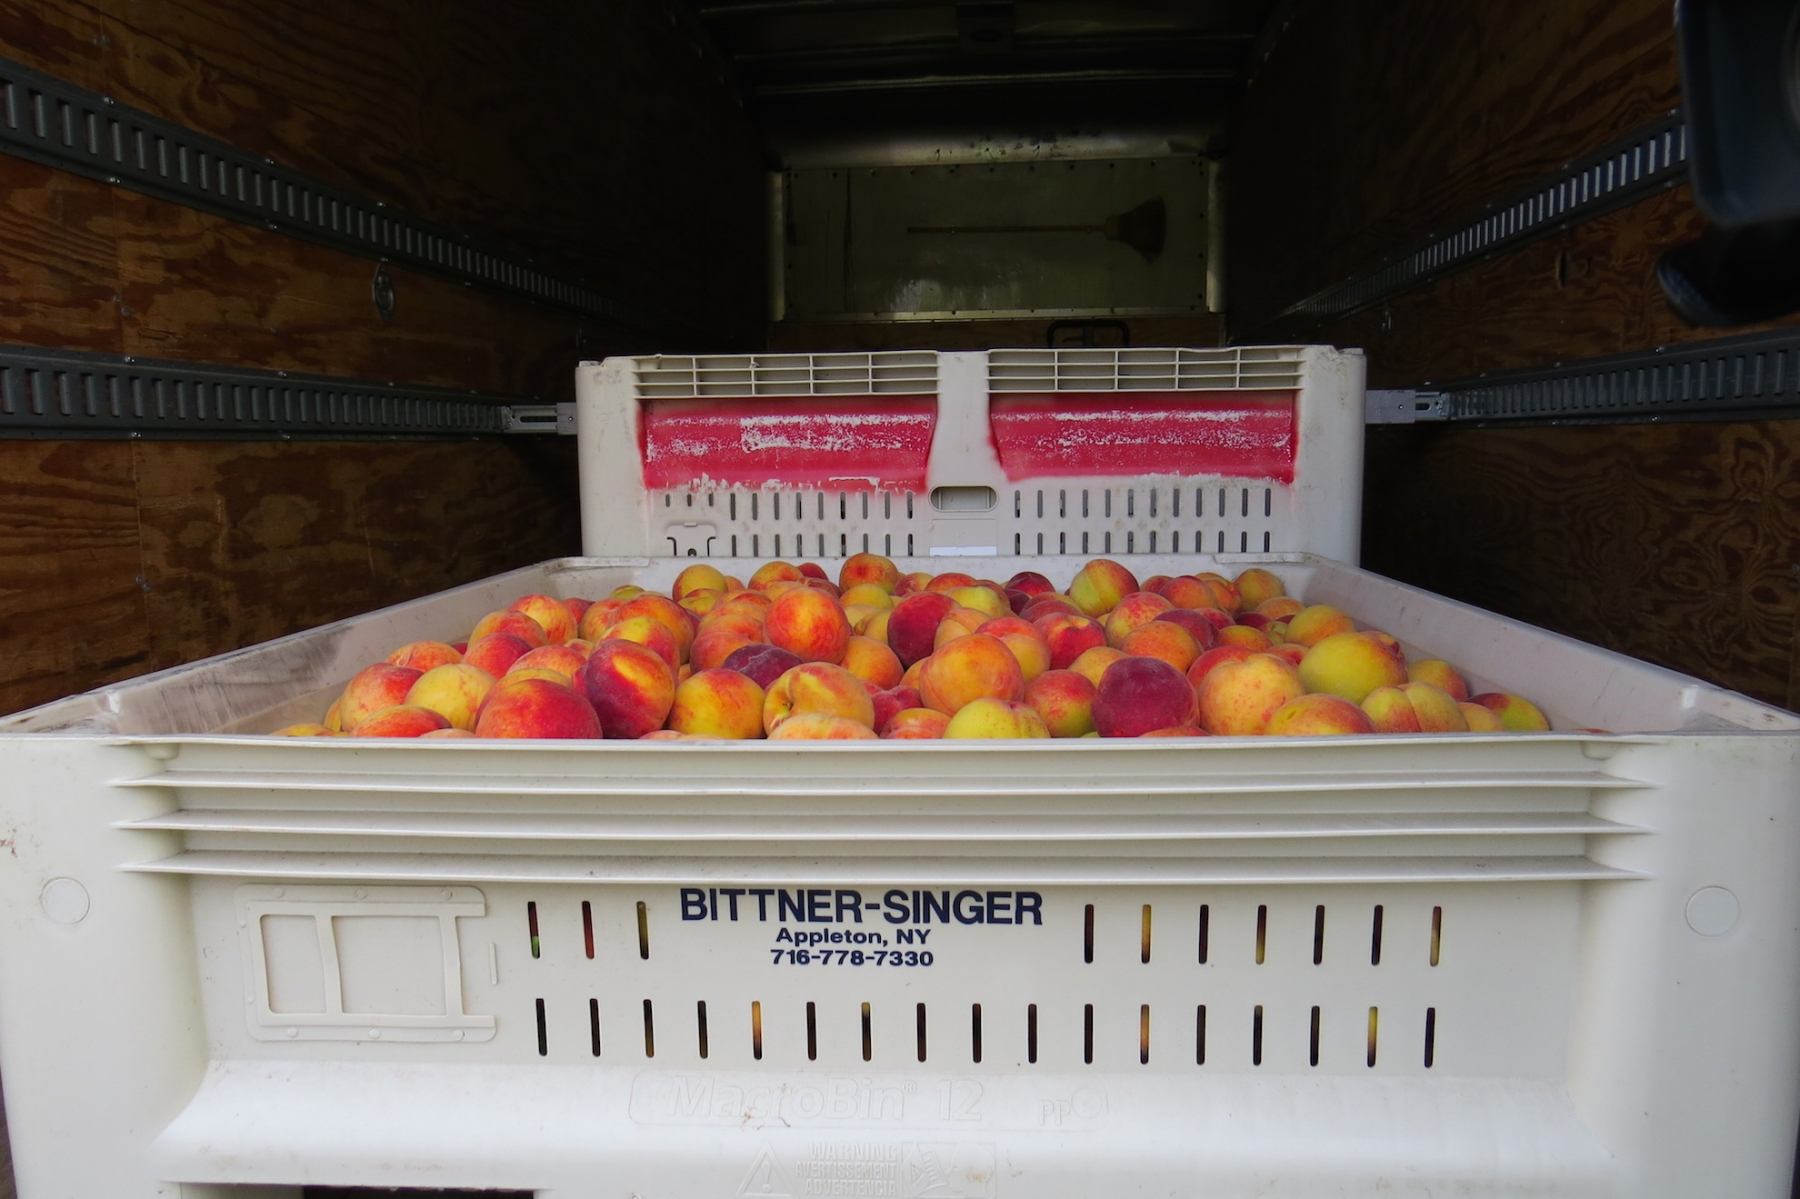 Peaches from Bittner Singer Farms.